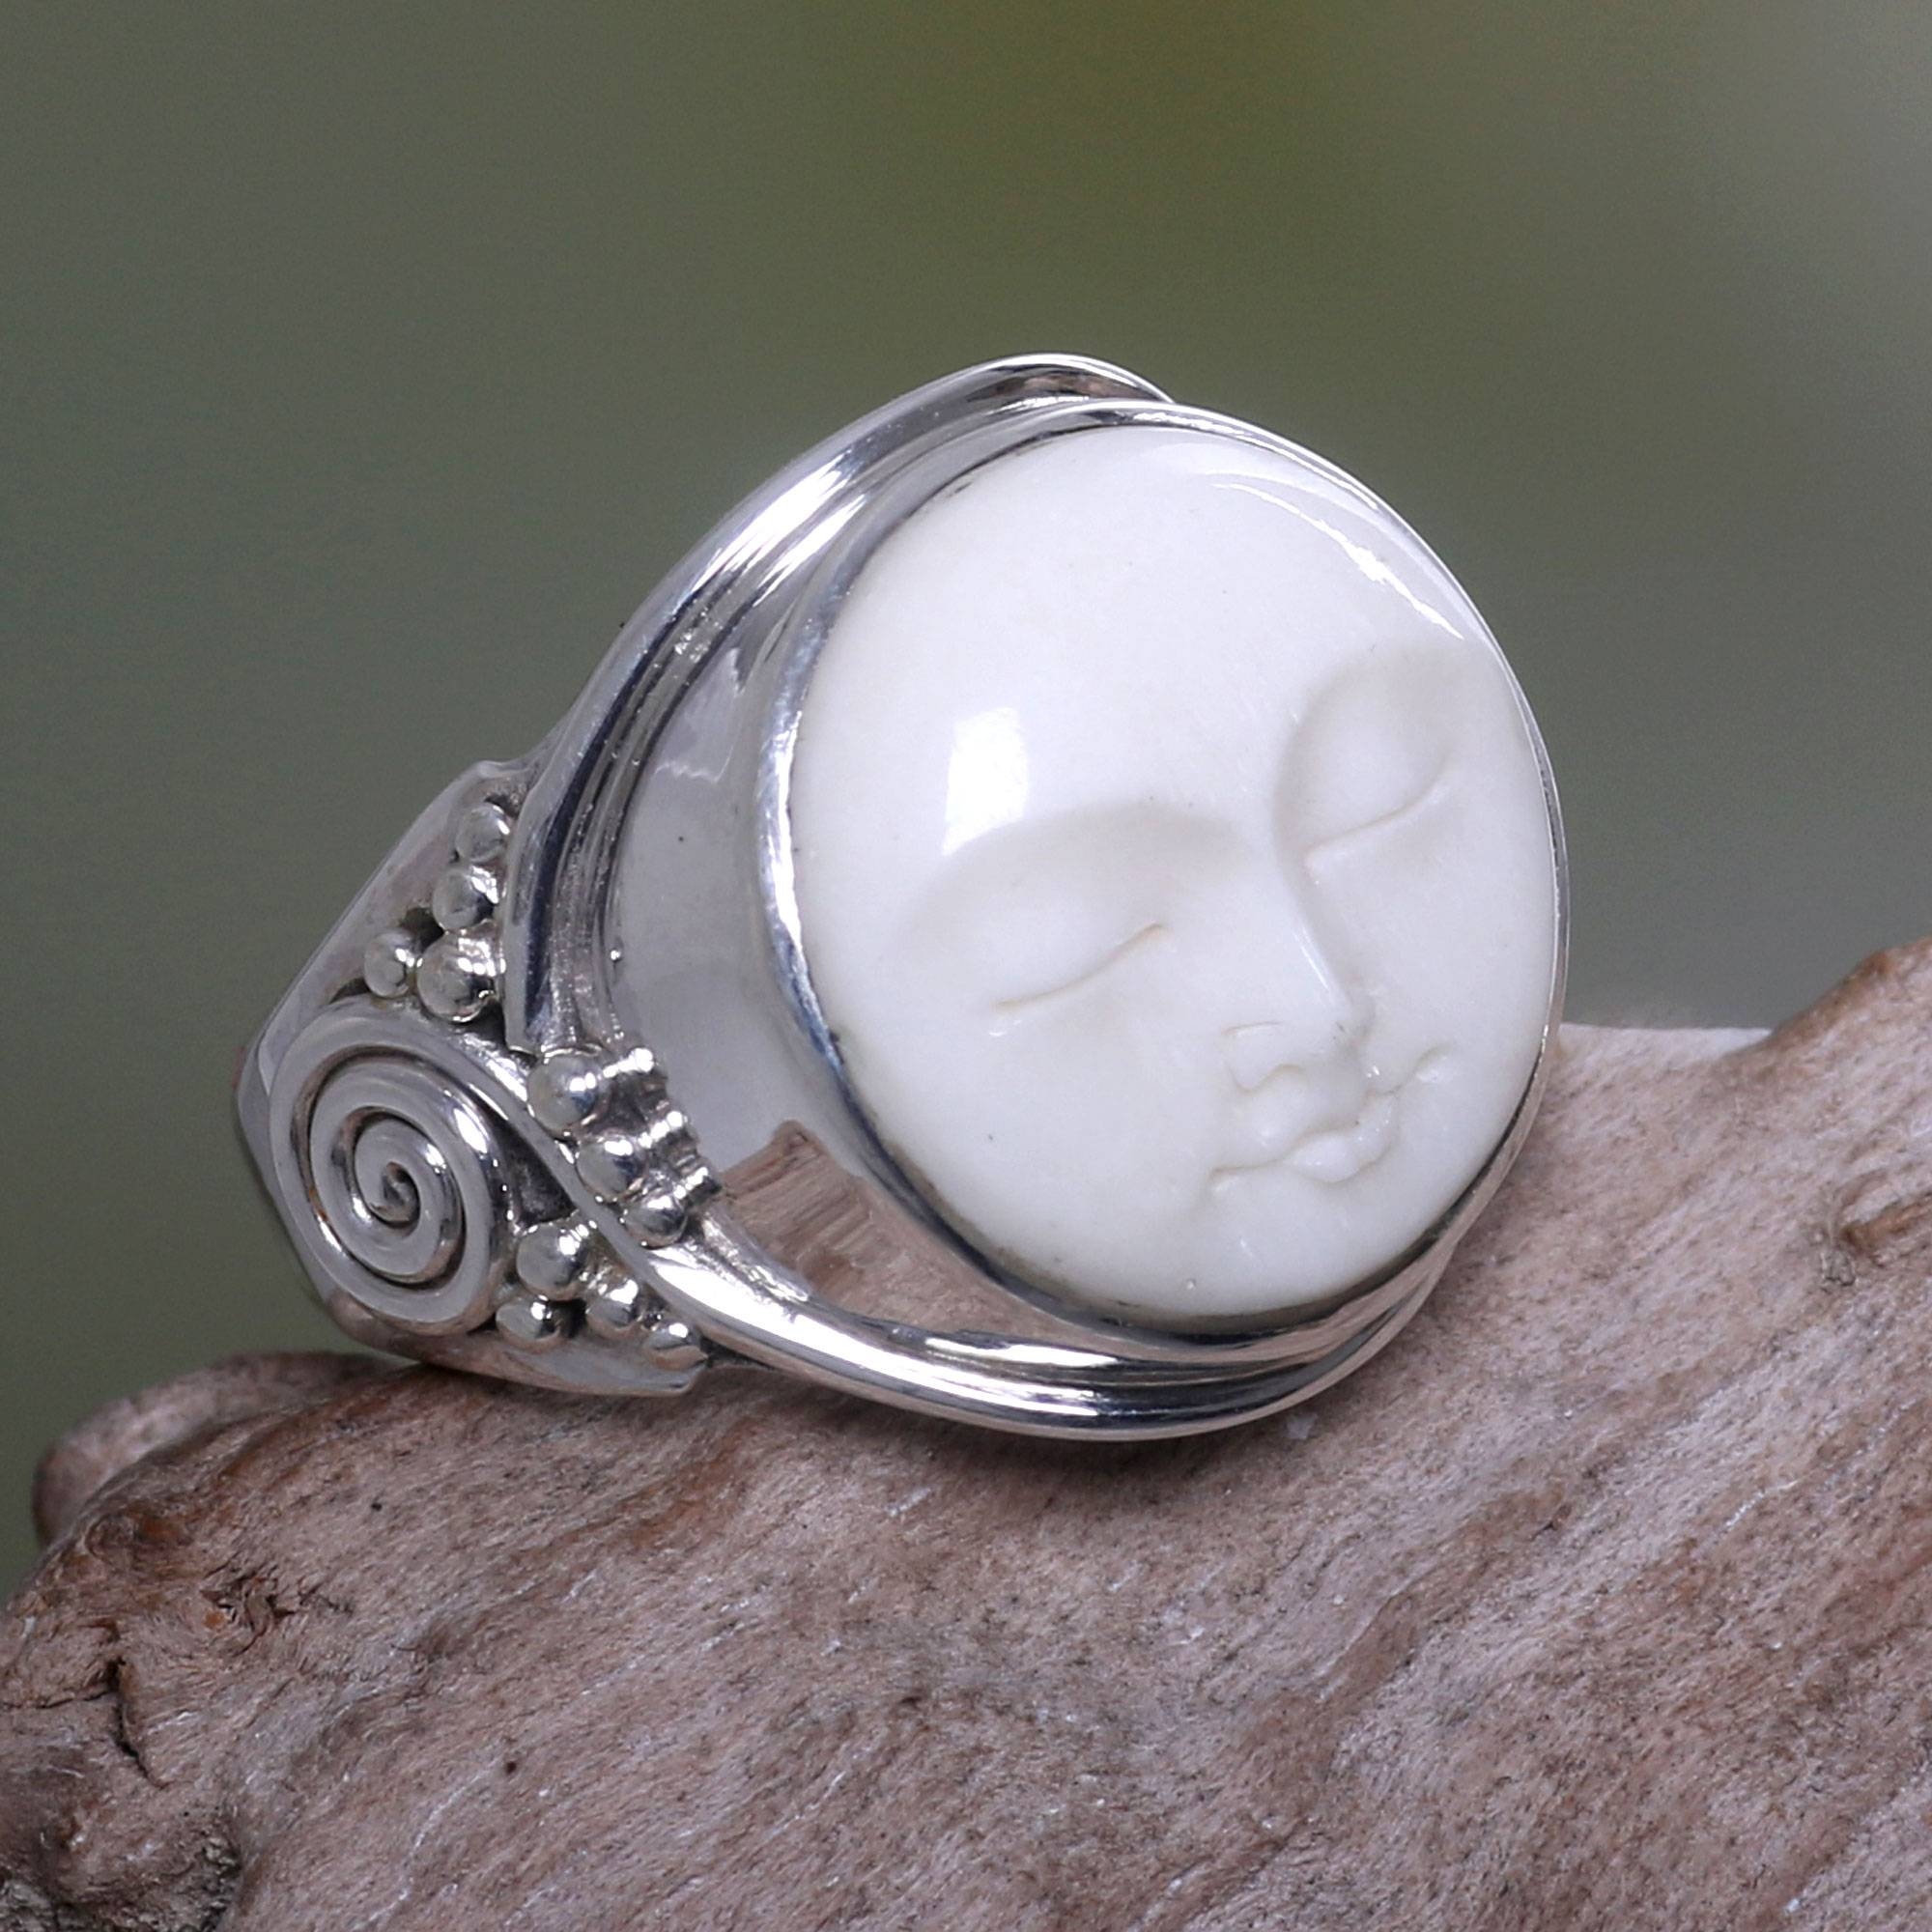 Unicef Market Women S Moon Face Cocktail Ring Of Sterling Silver And Bone Man In The Moon